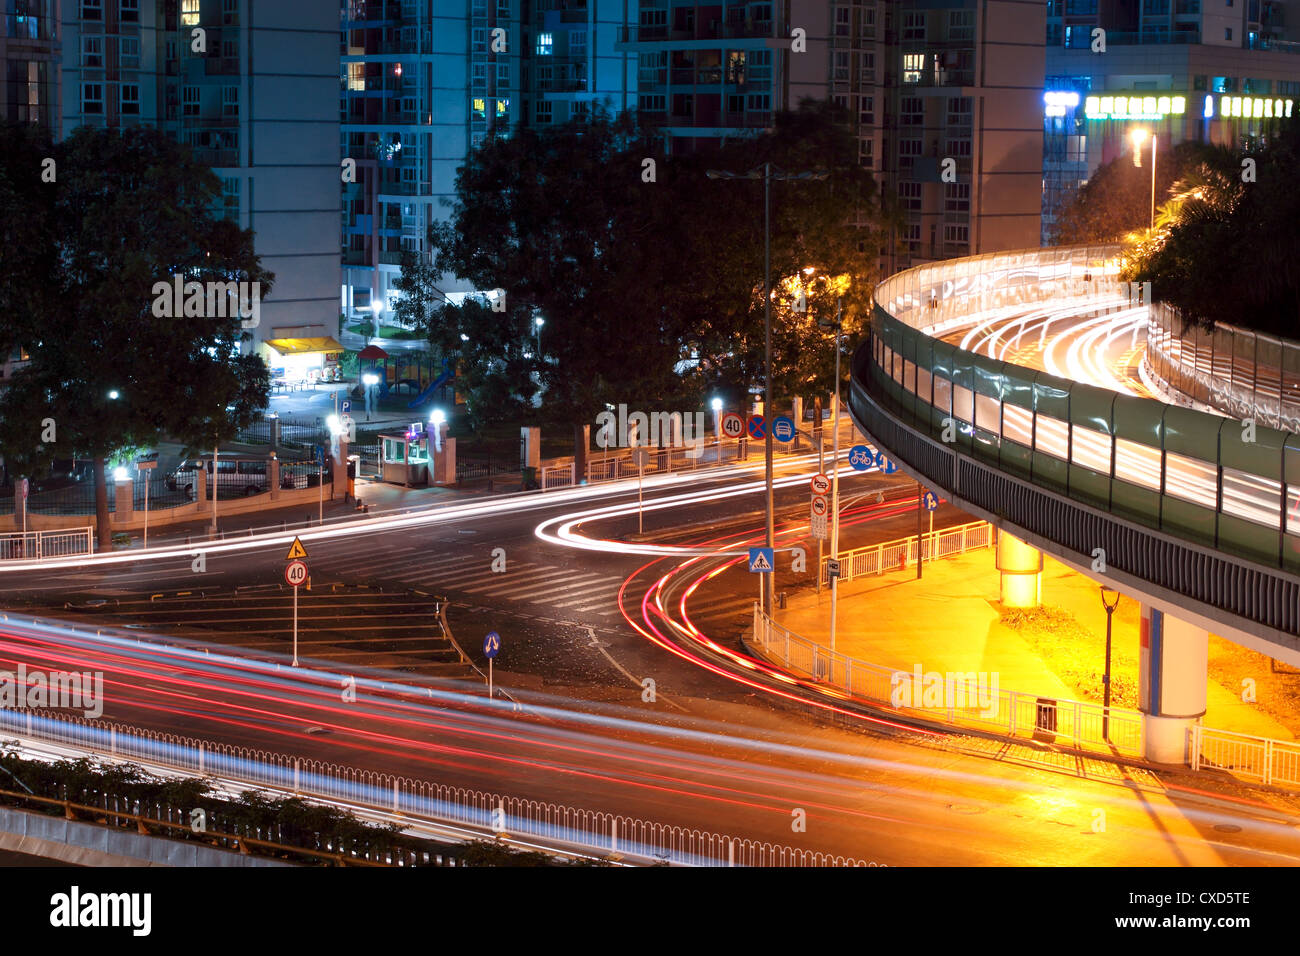 light trails on the overpasses at night - Stock Image